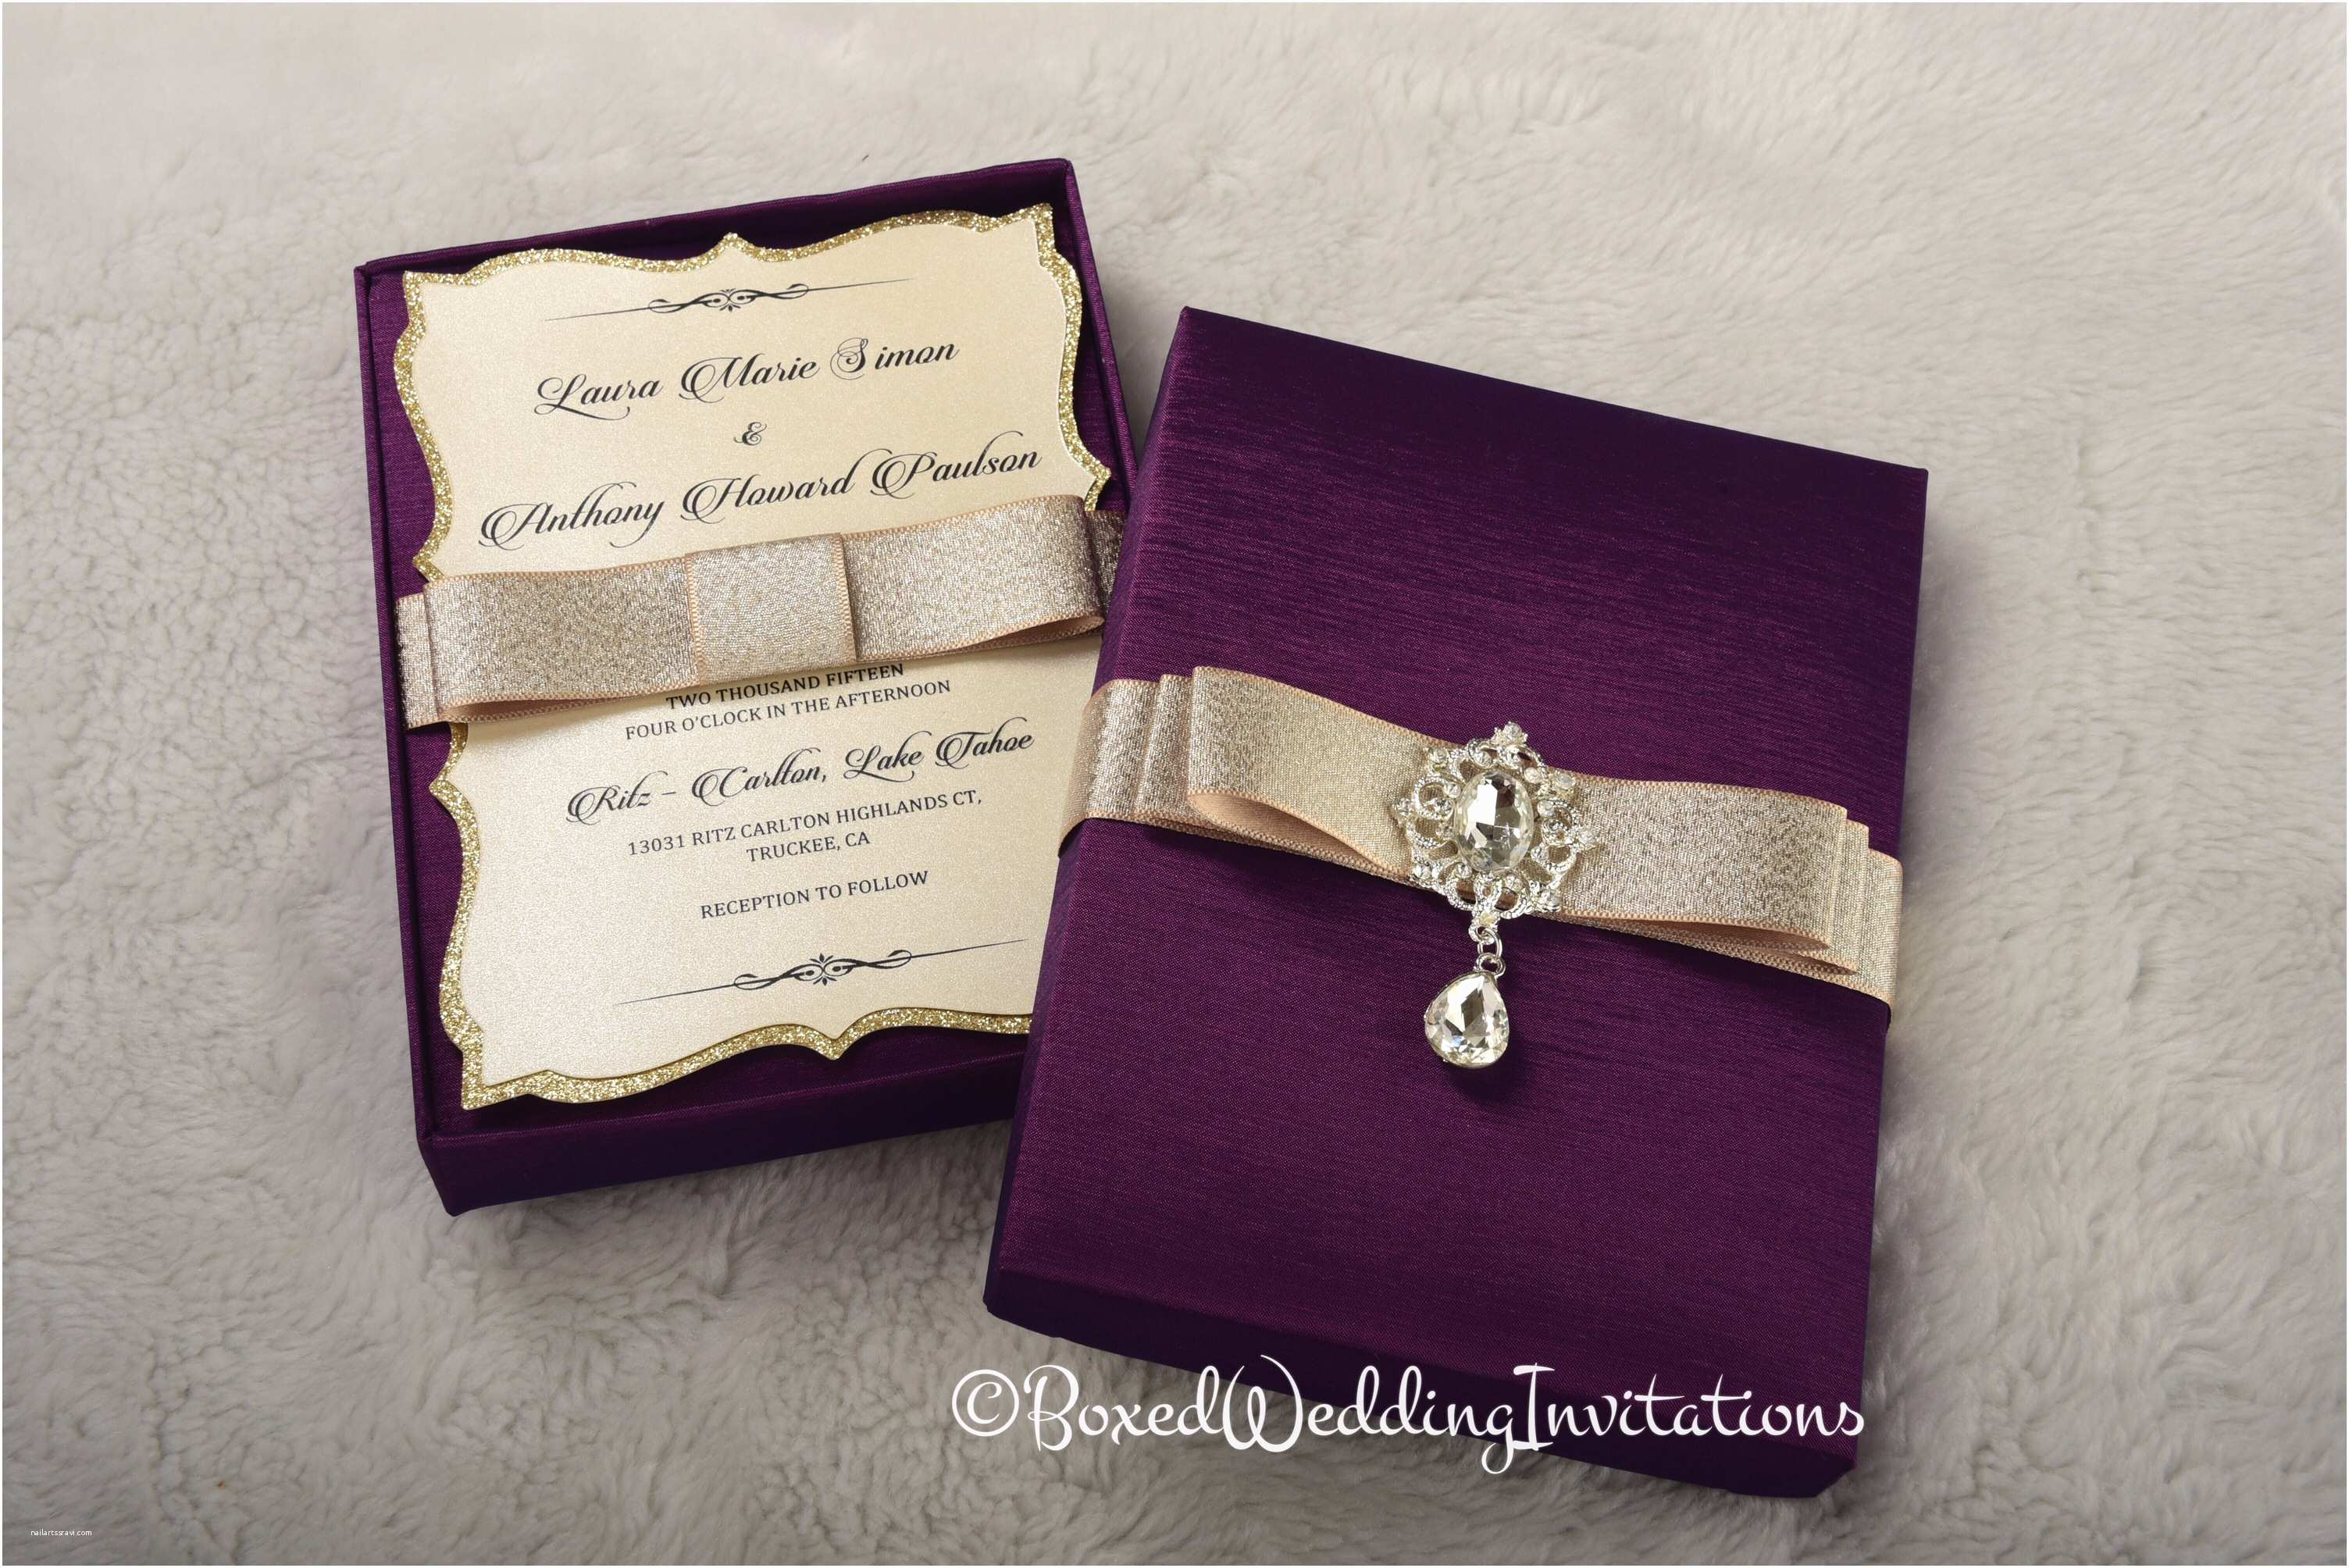 Box Wedding Invitations ask A Date to Home Ing with Boxed Invitations